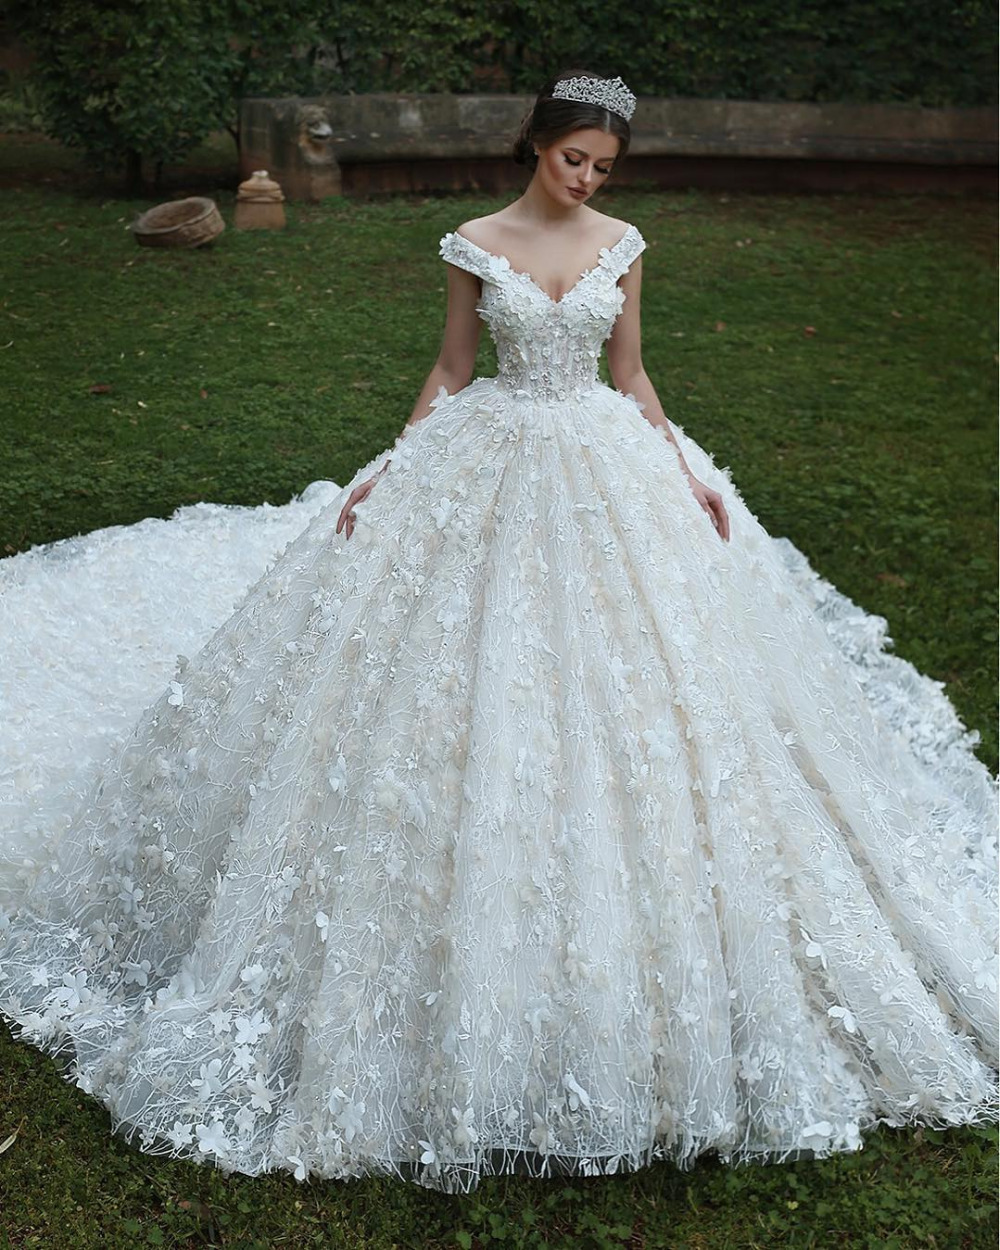 V Neck Wedding Gown: Eslieb High End Custom Made Lace V Neck Ball Gown Wedding